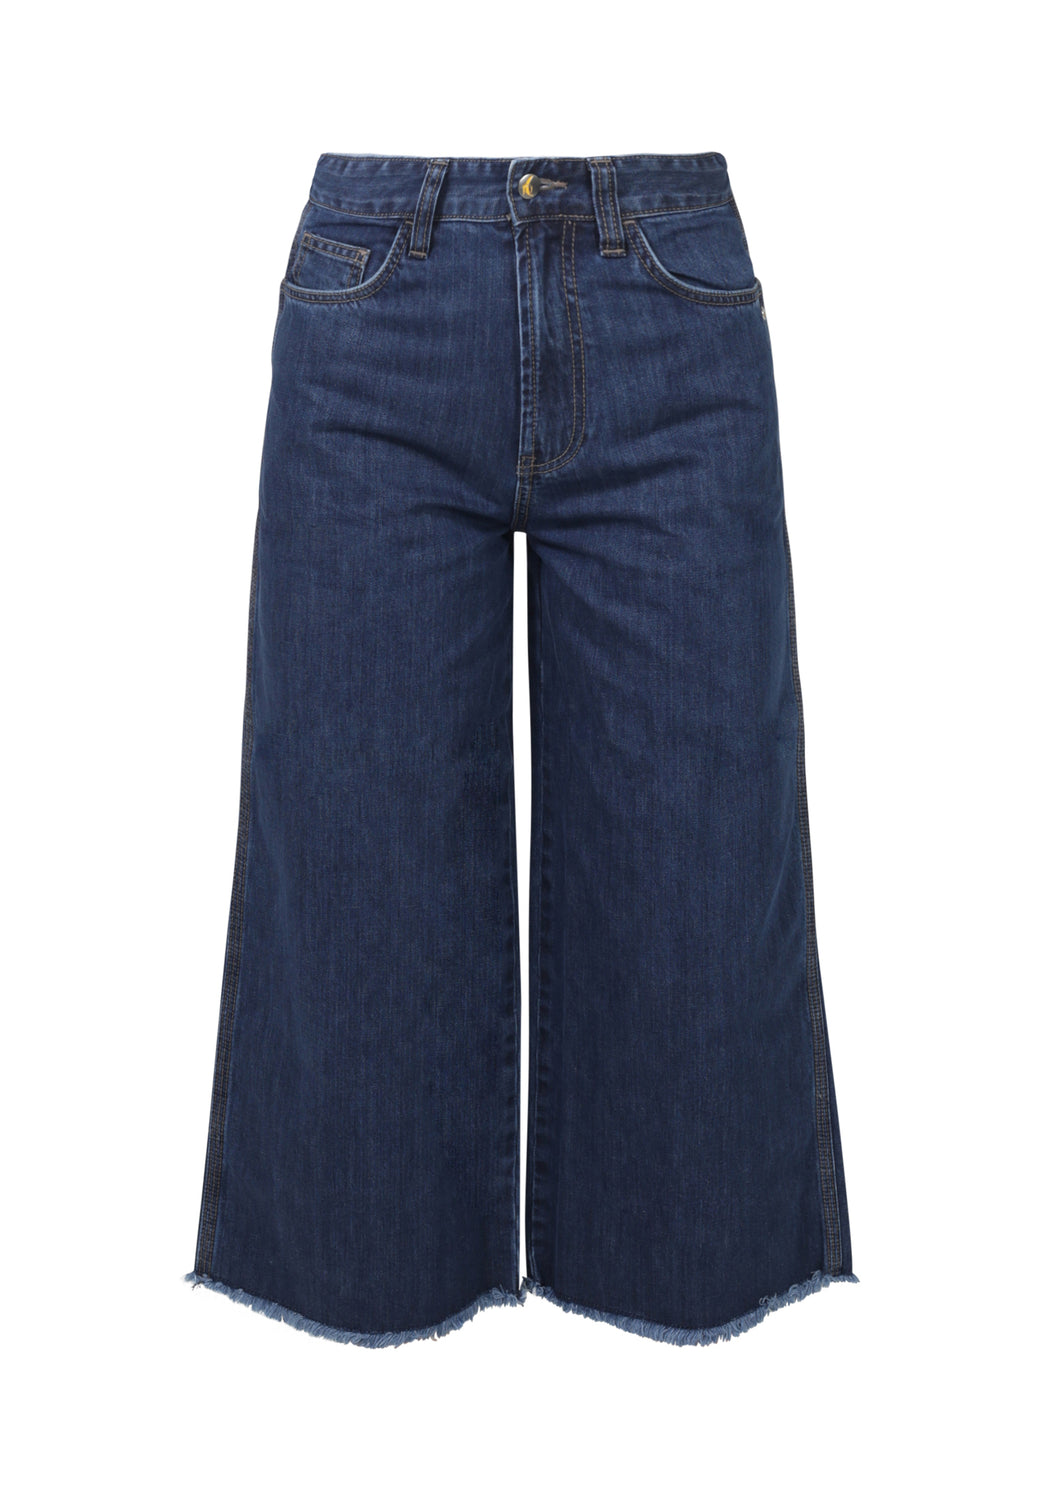 WIDE LEG // Organic Cropped Wide Leg Jeans in Dark Wash - Monkee Genes Organic Jeans Denim - Women's Cropped Monkee Genes Official  Monkee Genes Official